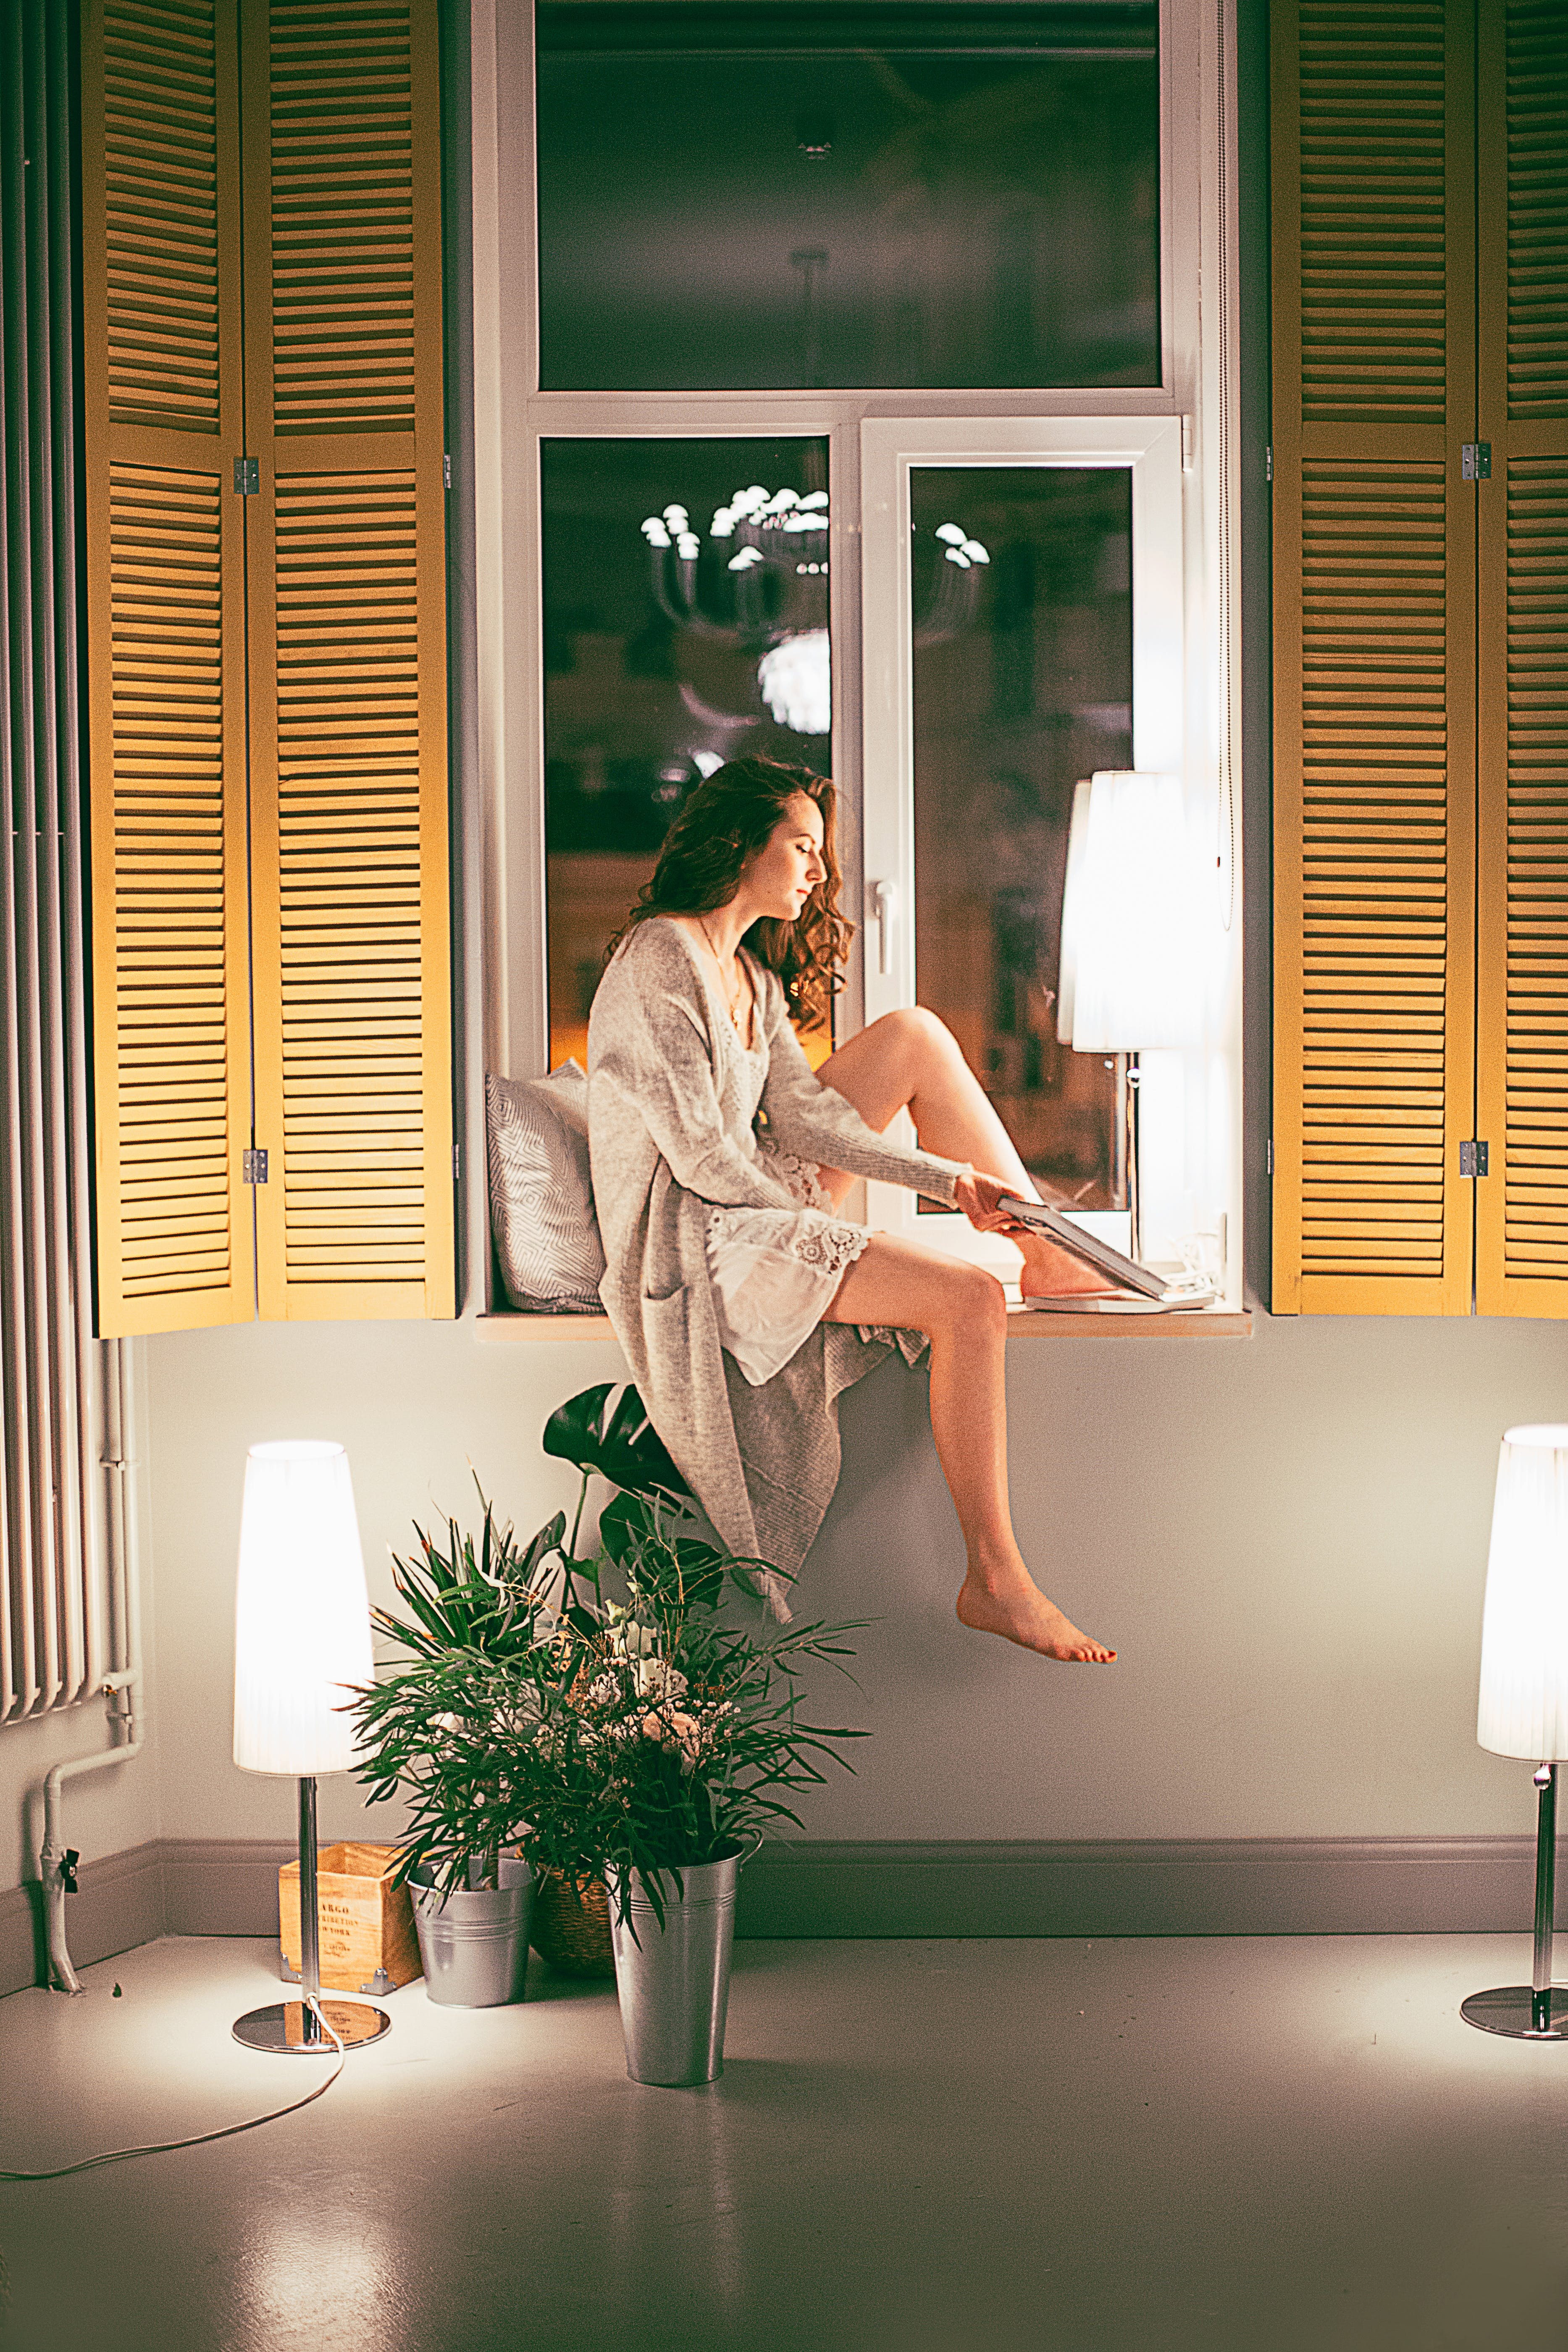 Woman Wearing Cardigan Sitting by the Window at Nighttime